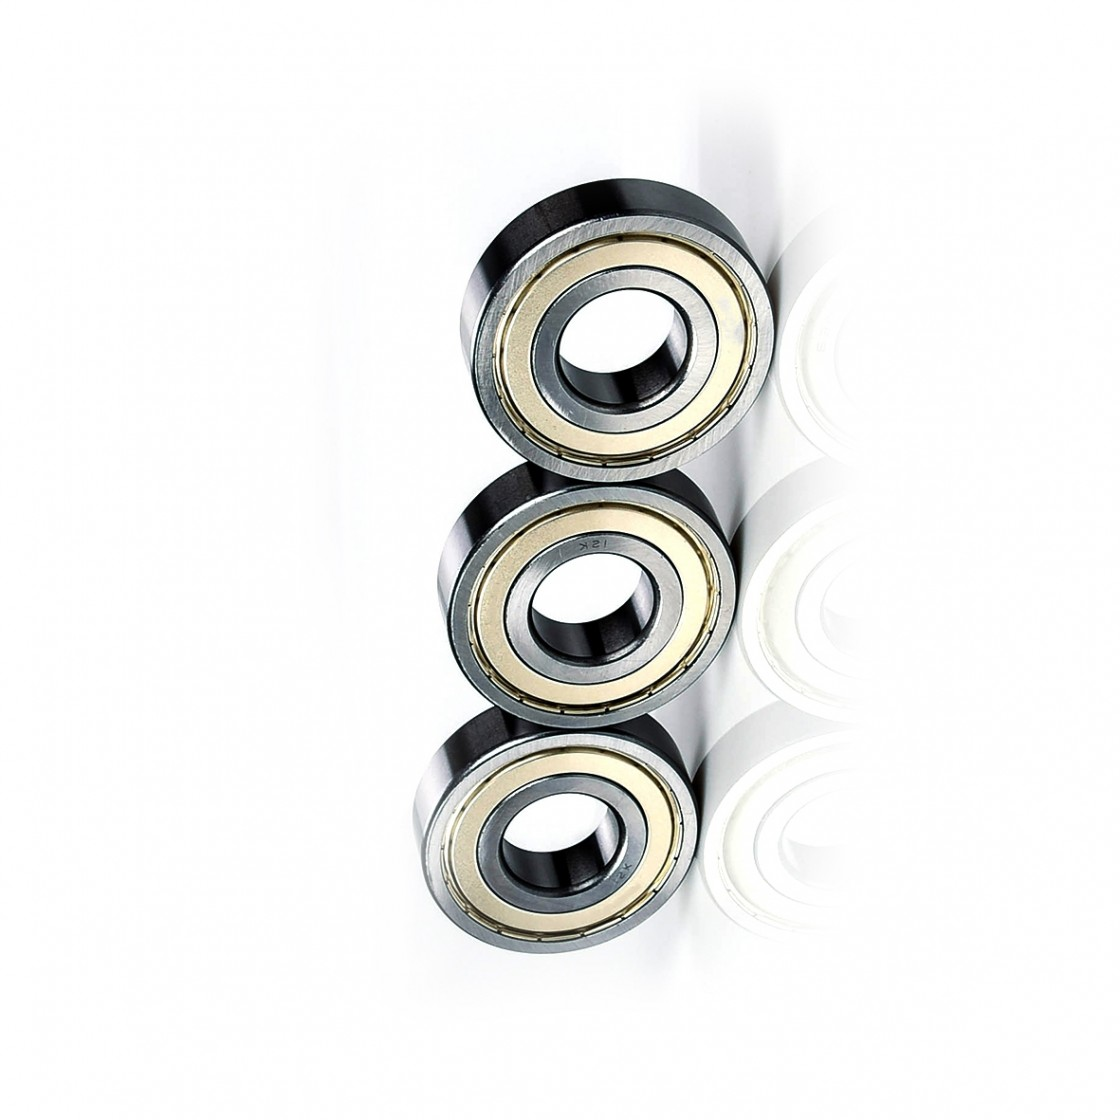 KOYO clutch throw out bearing RCT4067L1 TK40-1 bearing